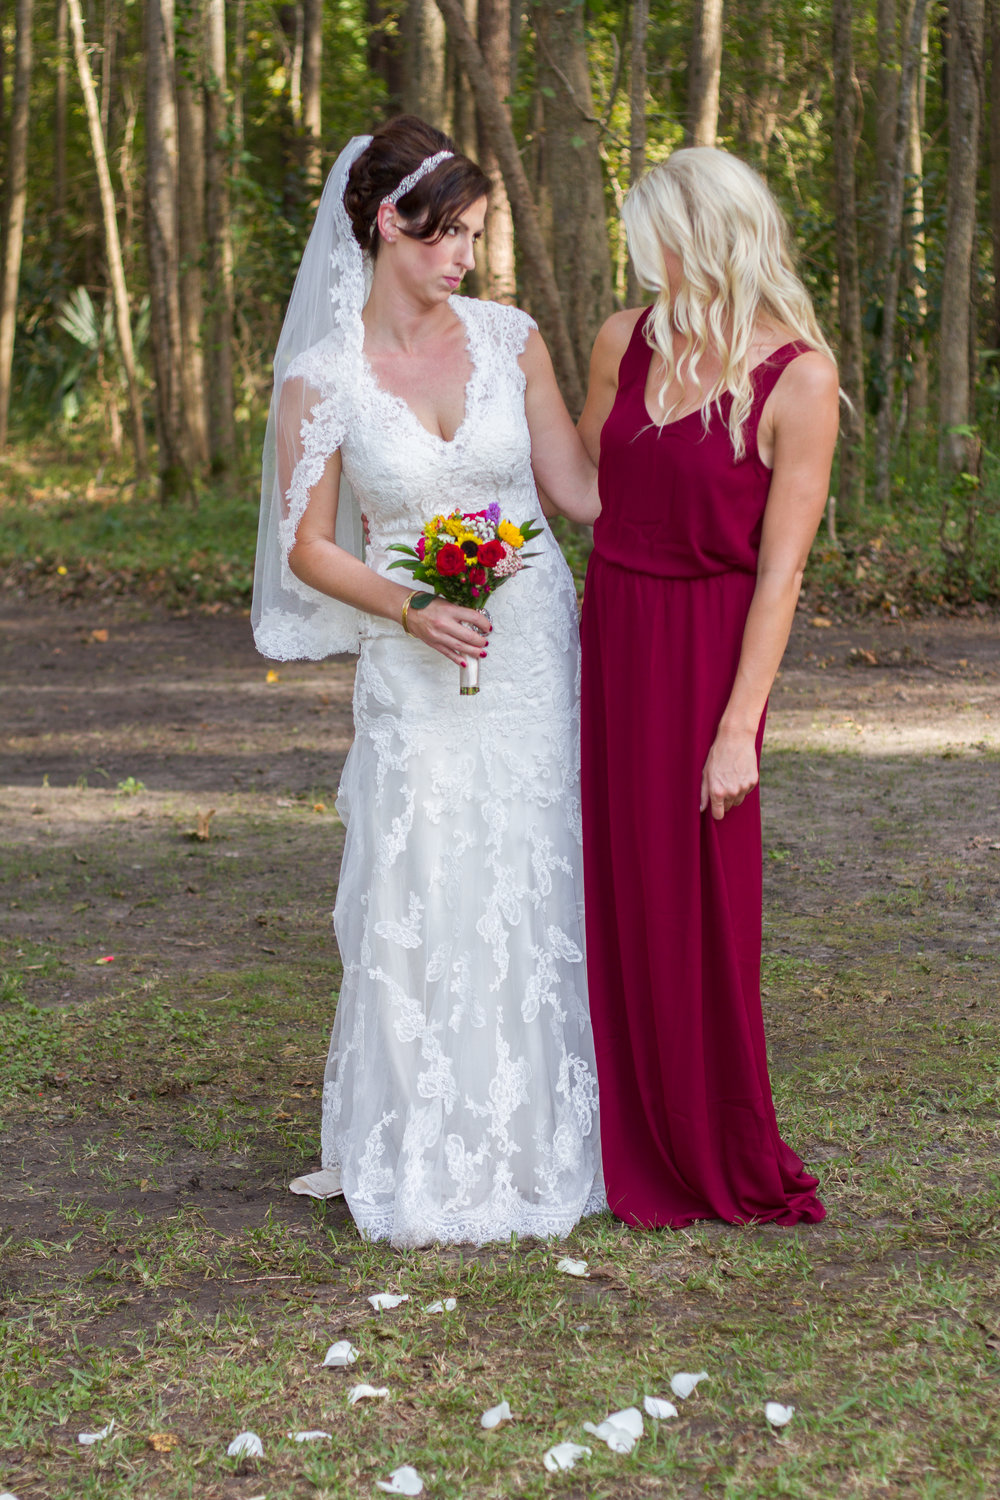 Jacqueline and Shawn Wedding (290 of 597).jpg